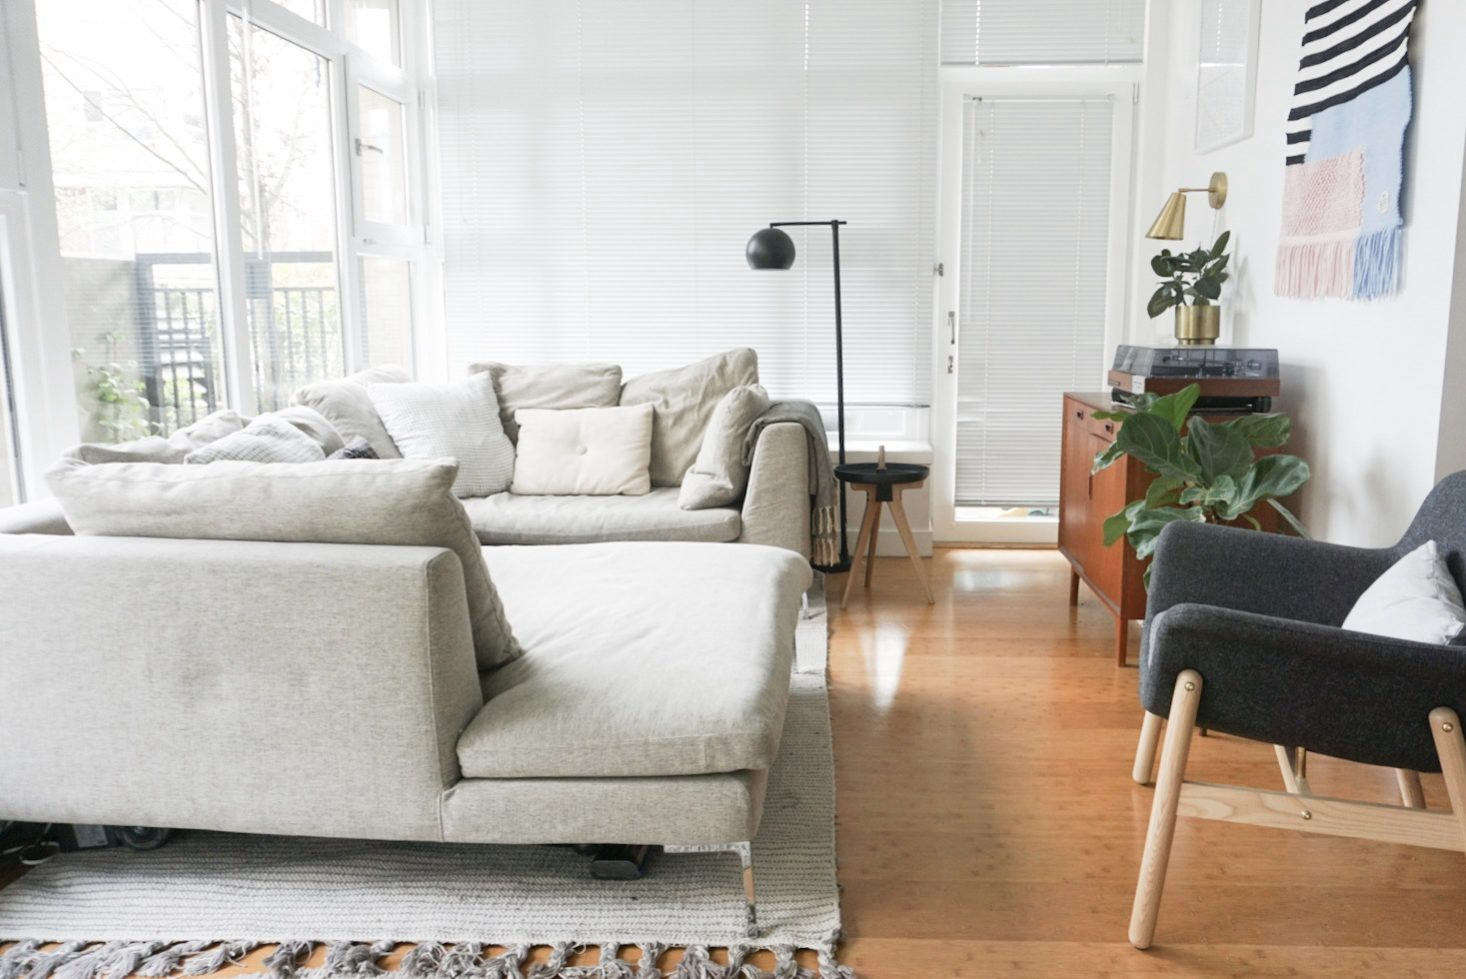 7 Things You Can Live Without in a Small Apartment